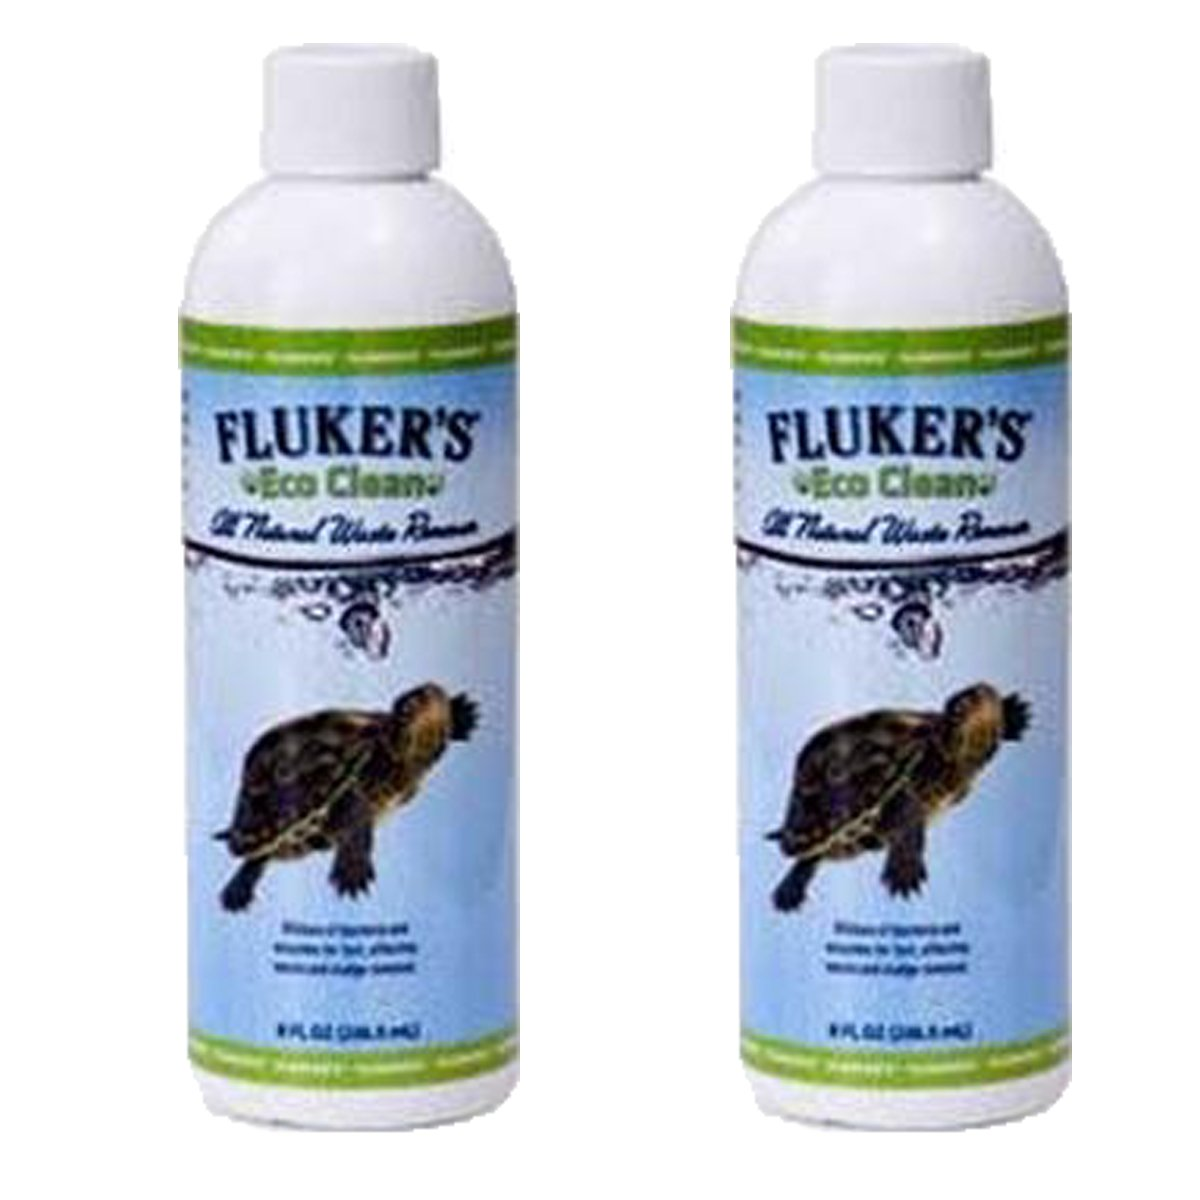 Fluker Labs SFK43000 Eco Clean All Natural Reptile Waste Remover, 8-Ounce TopDawg Pet Supply 919305